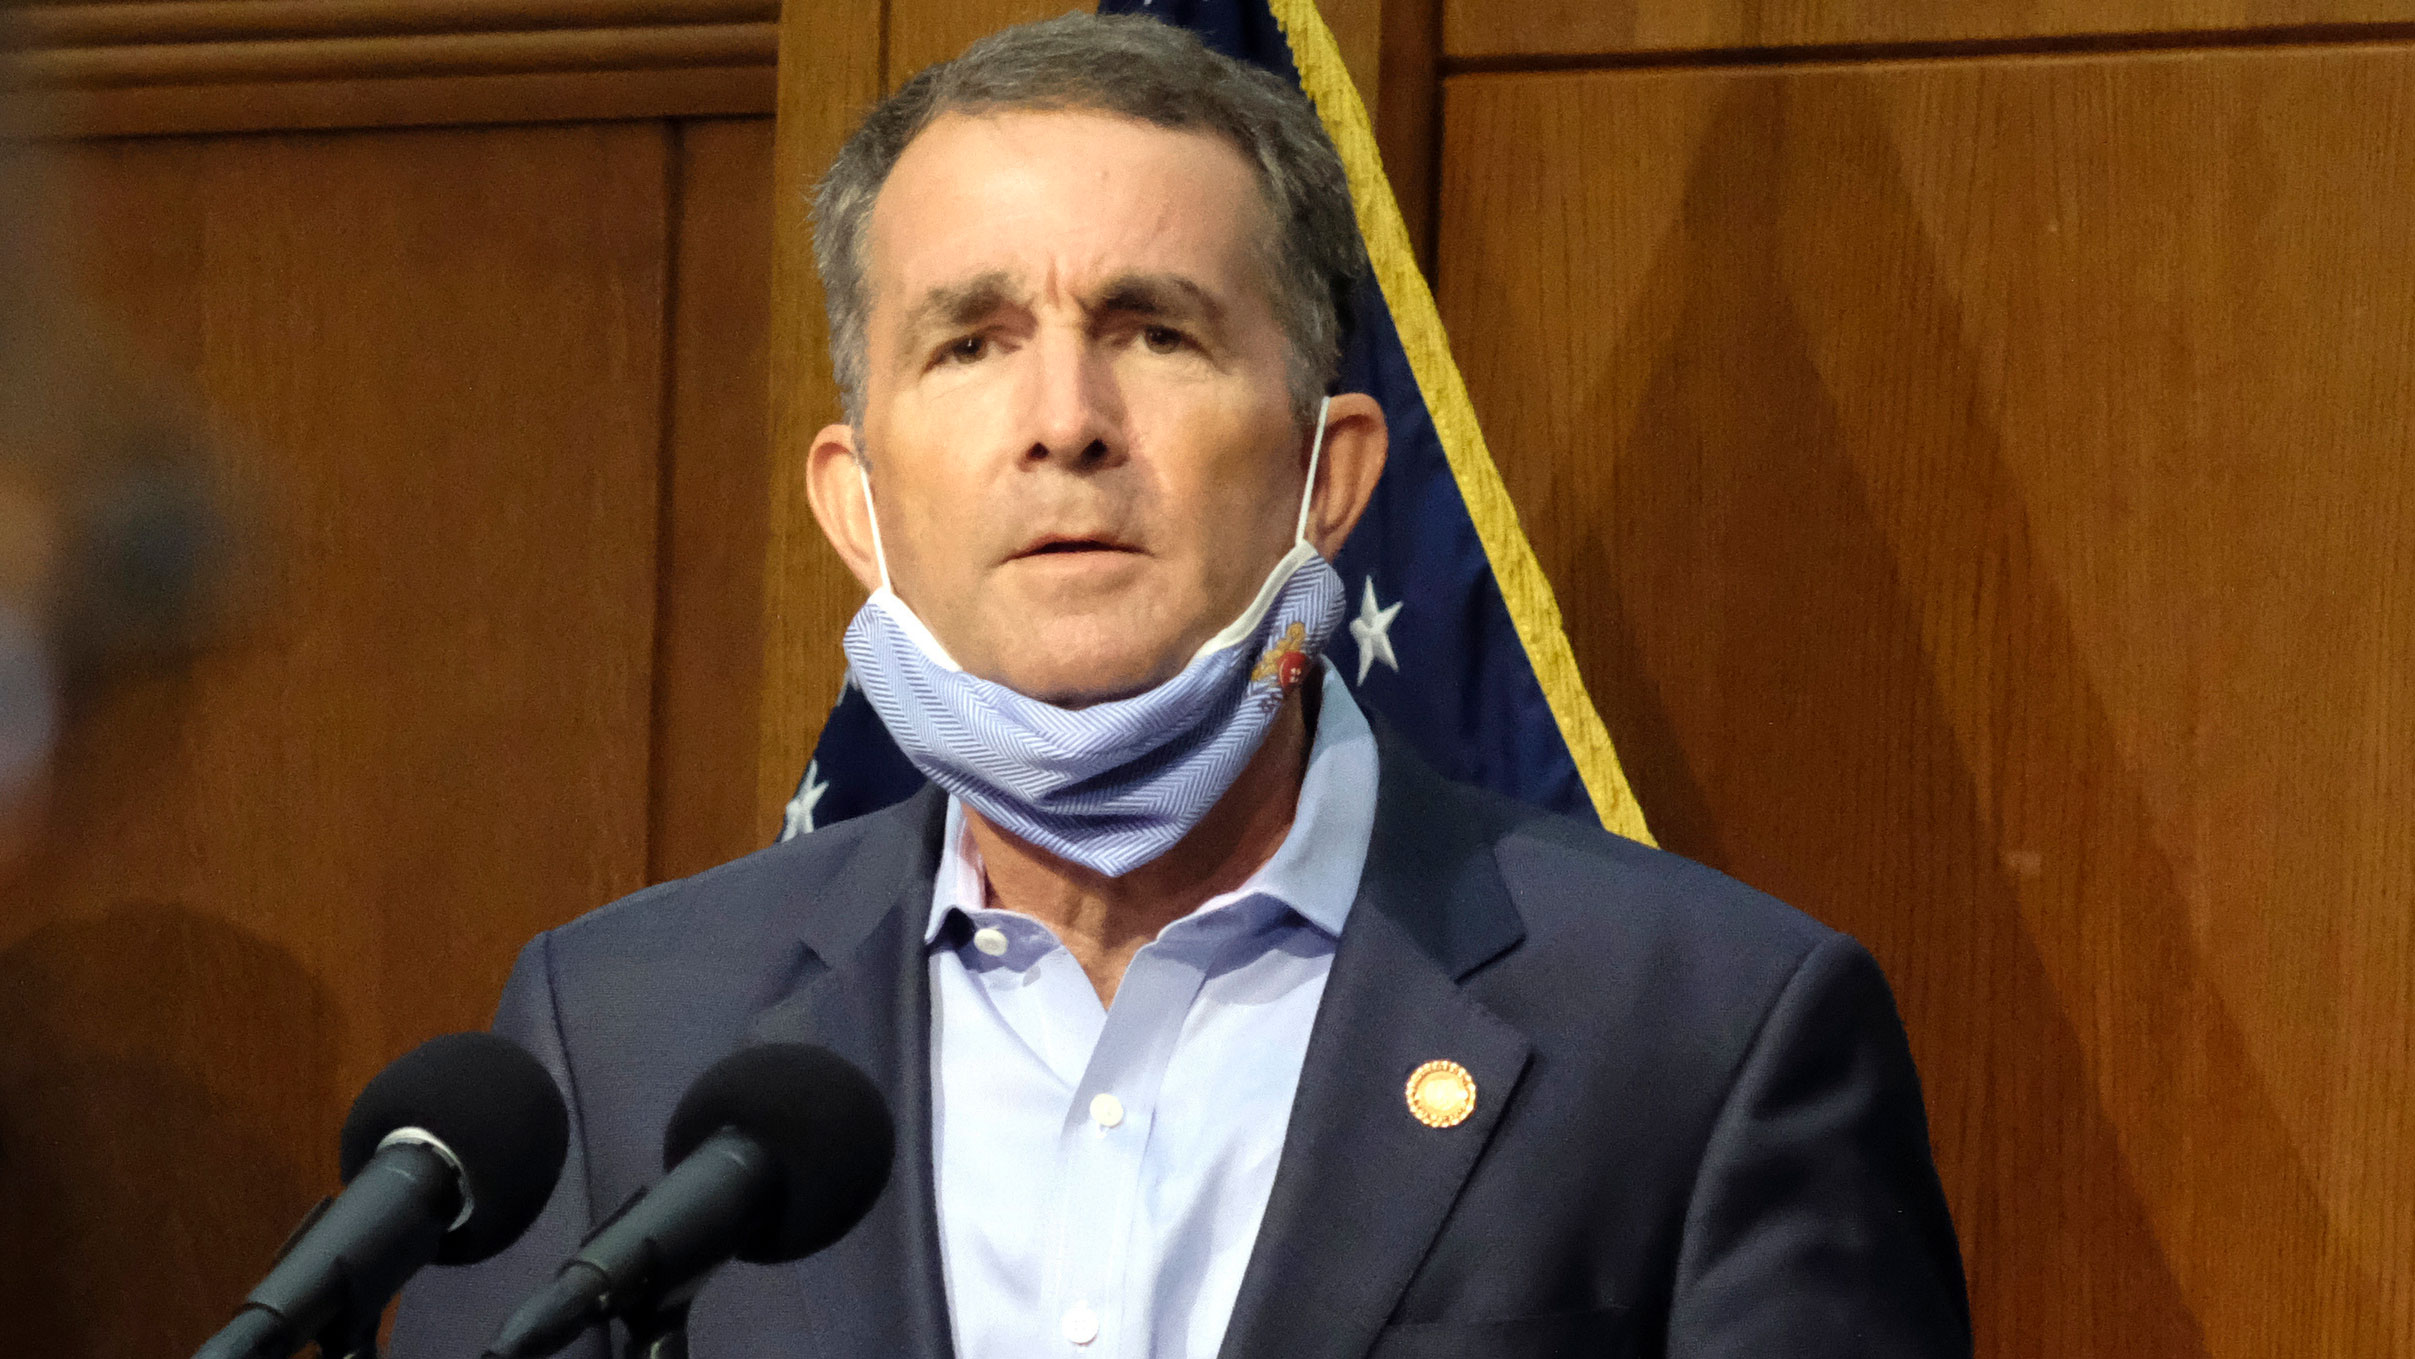 Gov. Ralph Northam holds a press briefing in Richmond, Virginia, on September 1.